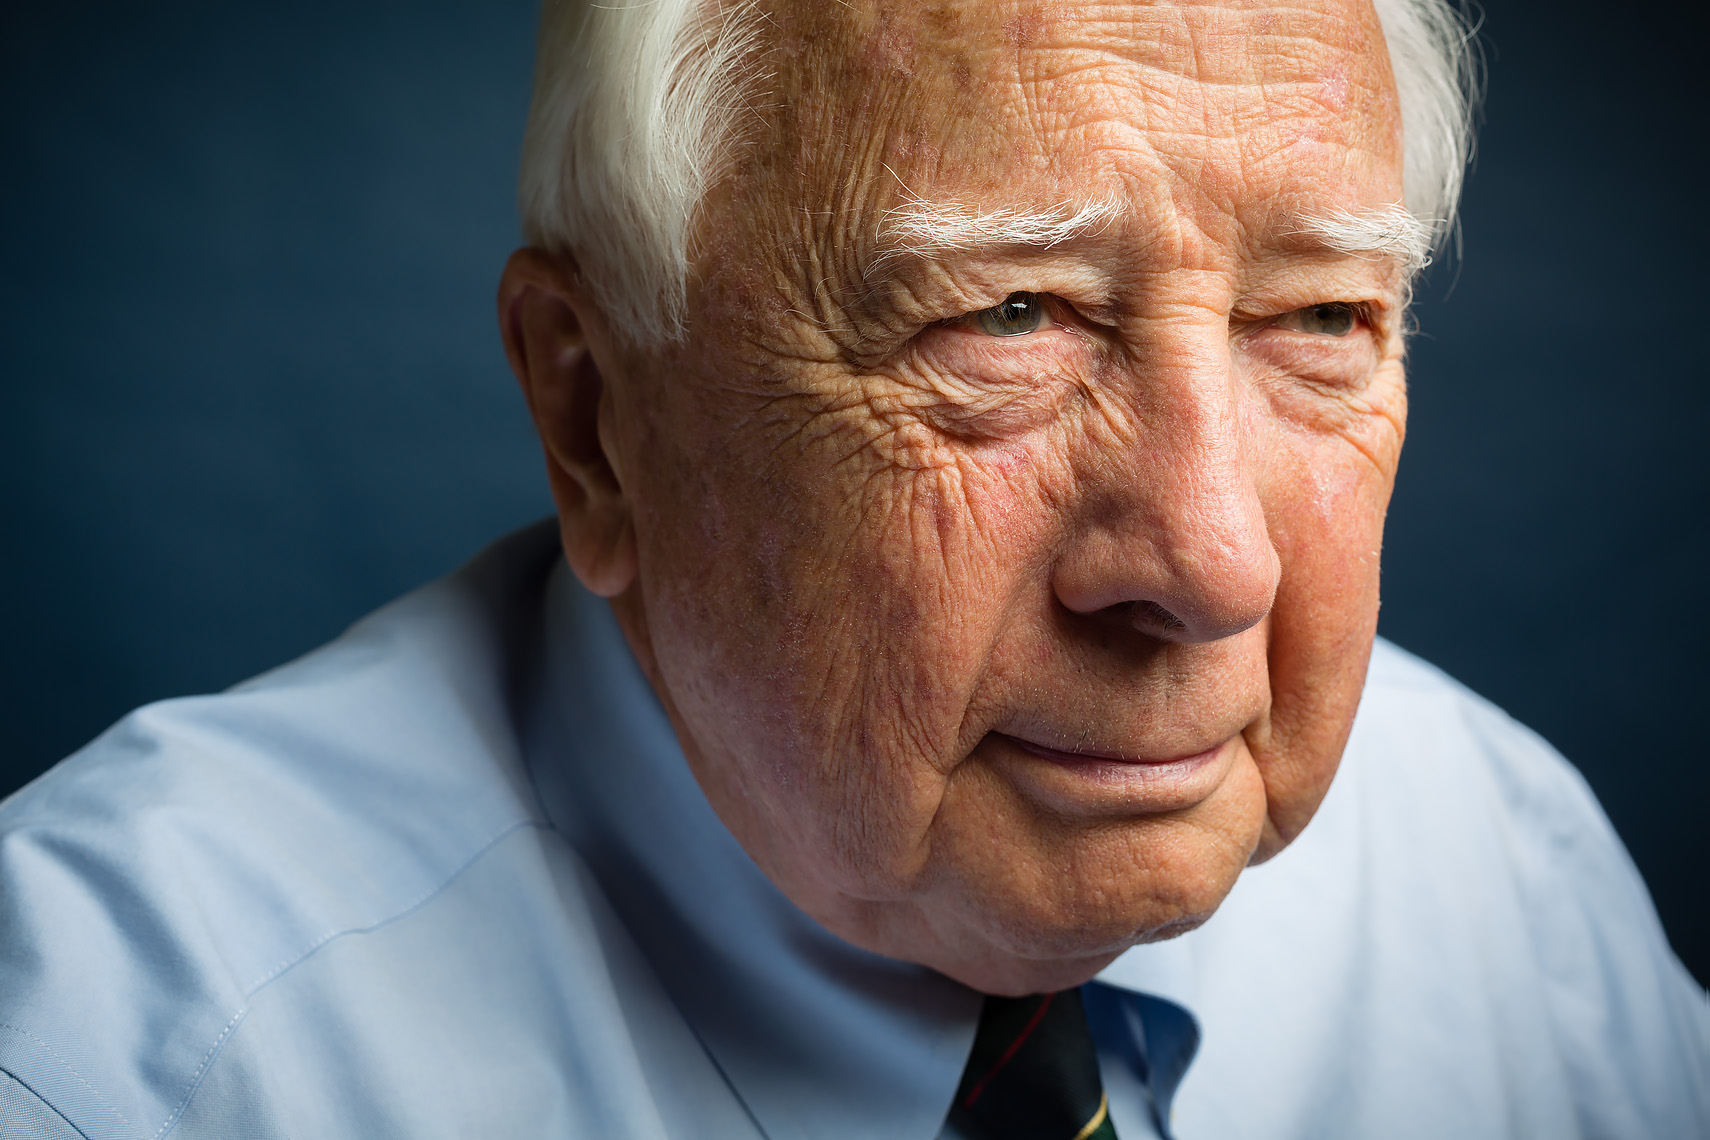 DAVID McCULLOUGH, PULITZER PRIZE WINNING AMERICAN AUTHOR & HISTORIAN